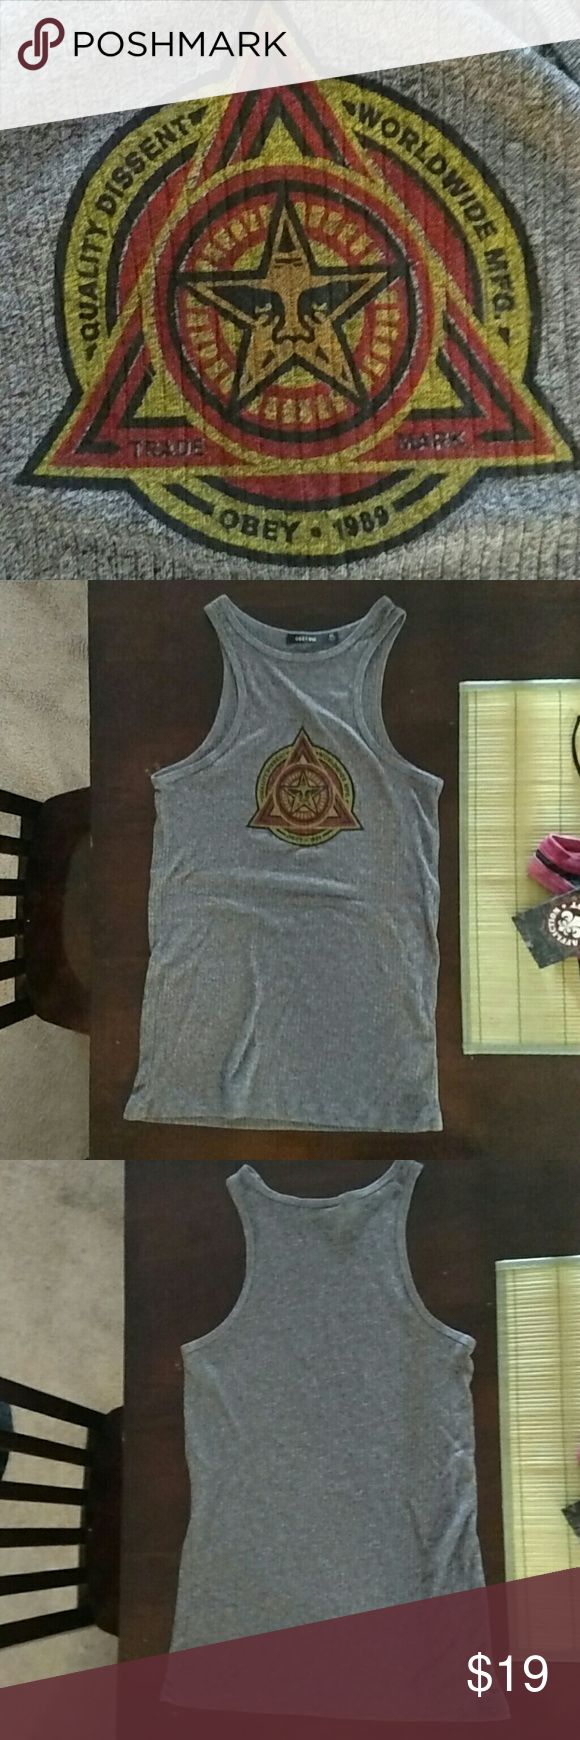 Never worn!!!! Obey No89 Tank Top Never worn, only tried on, Obey No89 brand grey high-neck tank top, purchased at buckle 6 months ago. Really cute but unfortunately not really my style anymore. Sorry, no trades!!! I am open to offers however! Very fast shipper, all 5 star feedback :) Obey Tops Tank Tops